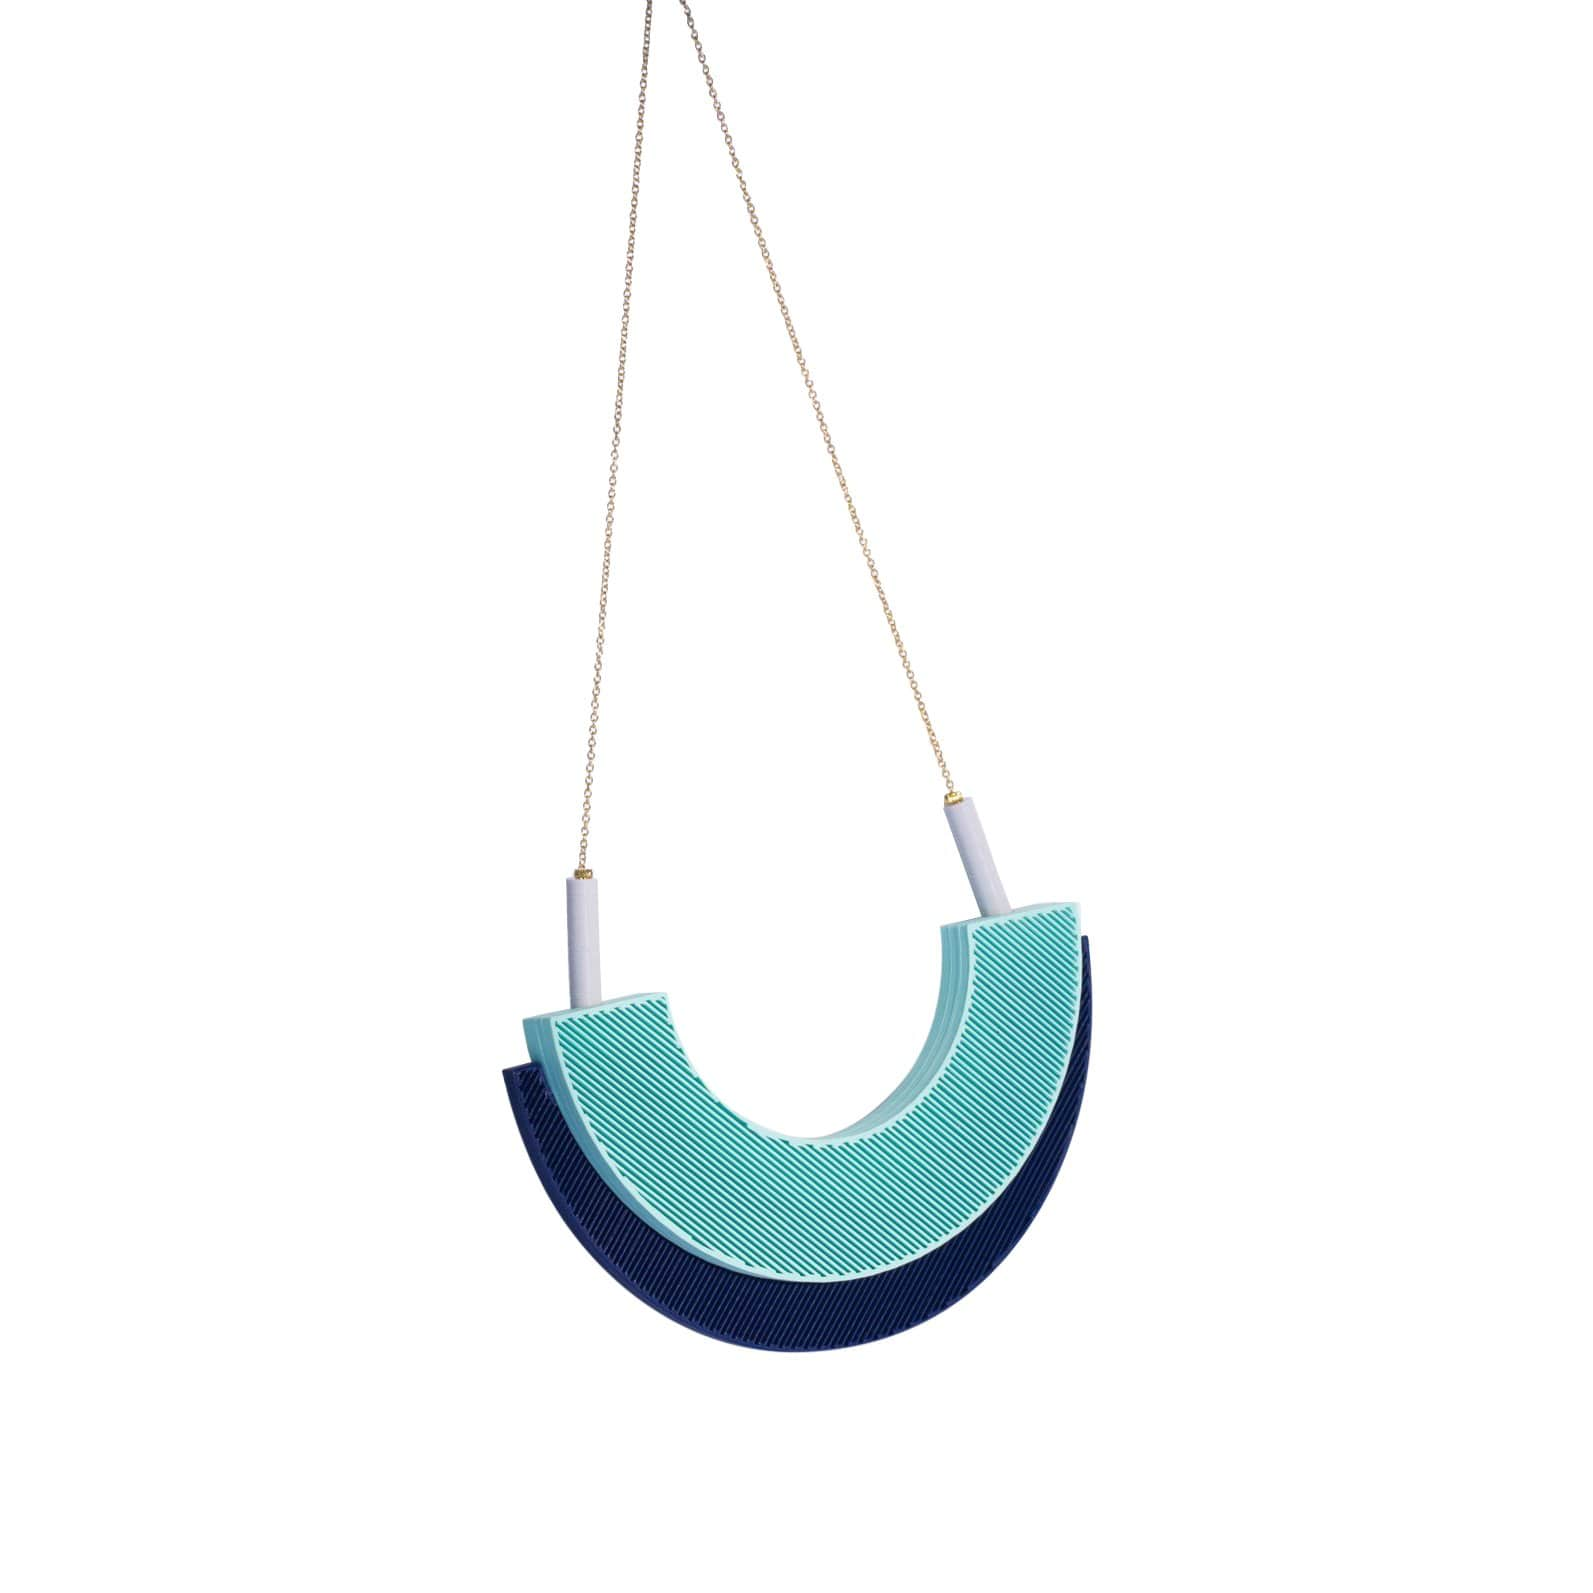 TOPODOM Necklaces Mint-Blue Moire Isla